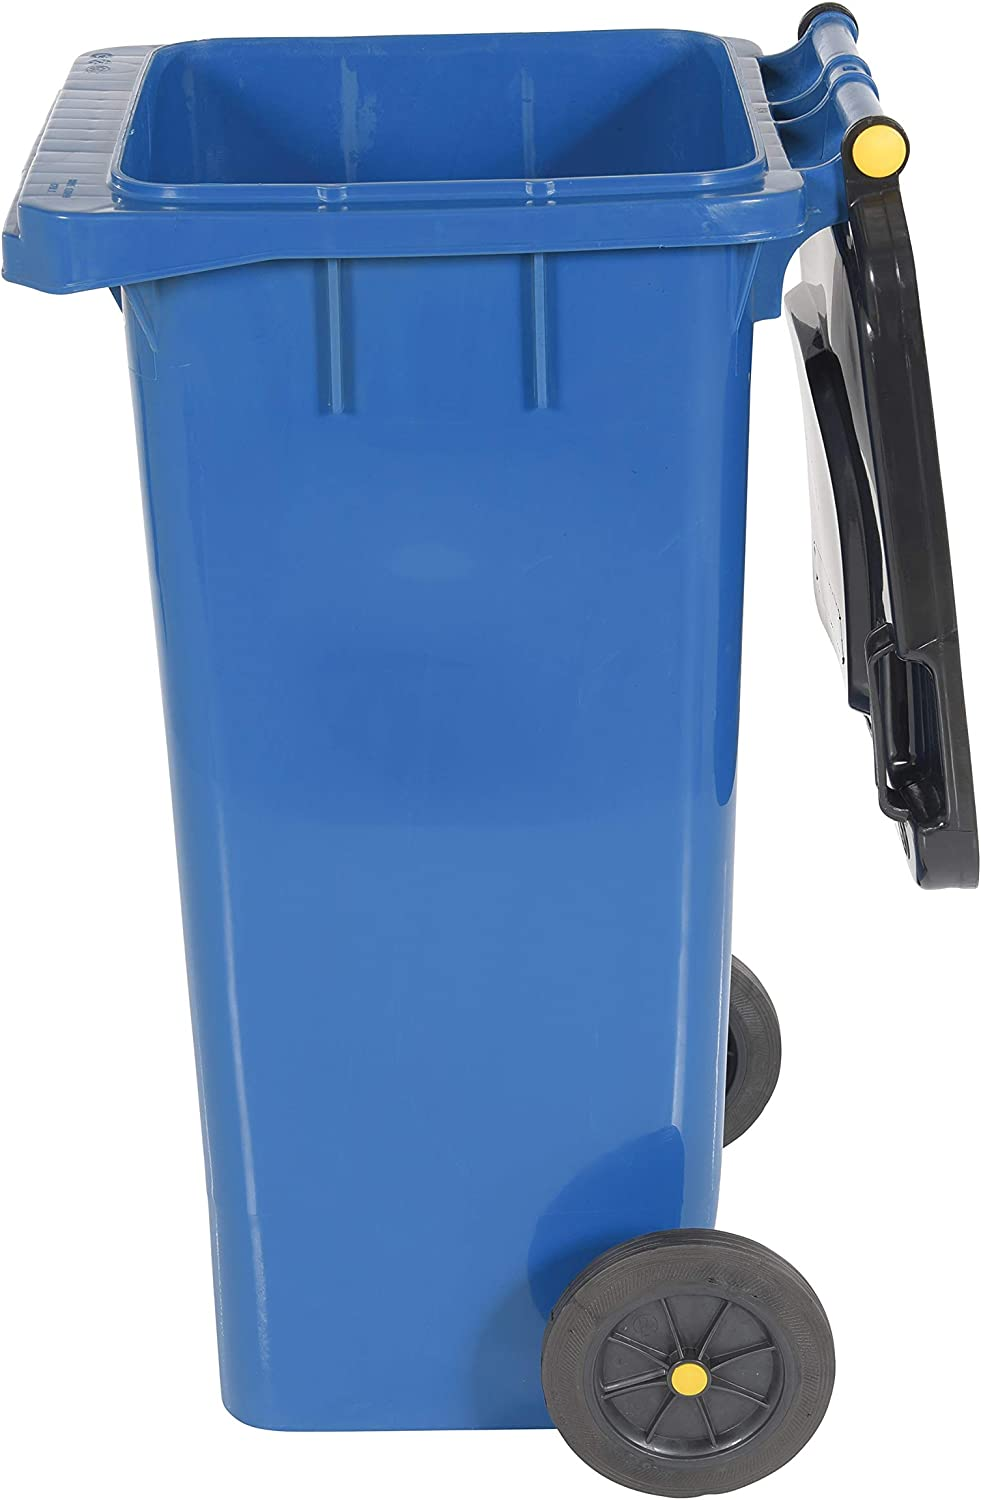 Polyethylene 32 gallon Capacity 22 Depth Blue 18-1//2 Width 37-1//2 Height Vestil TH-32-BLU Trash Can